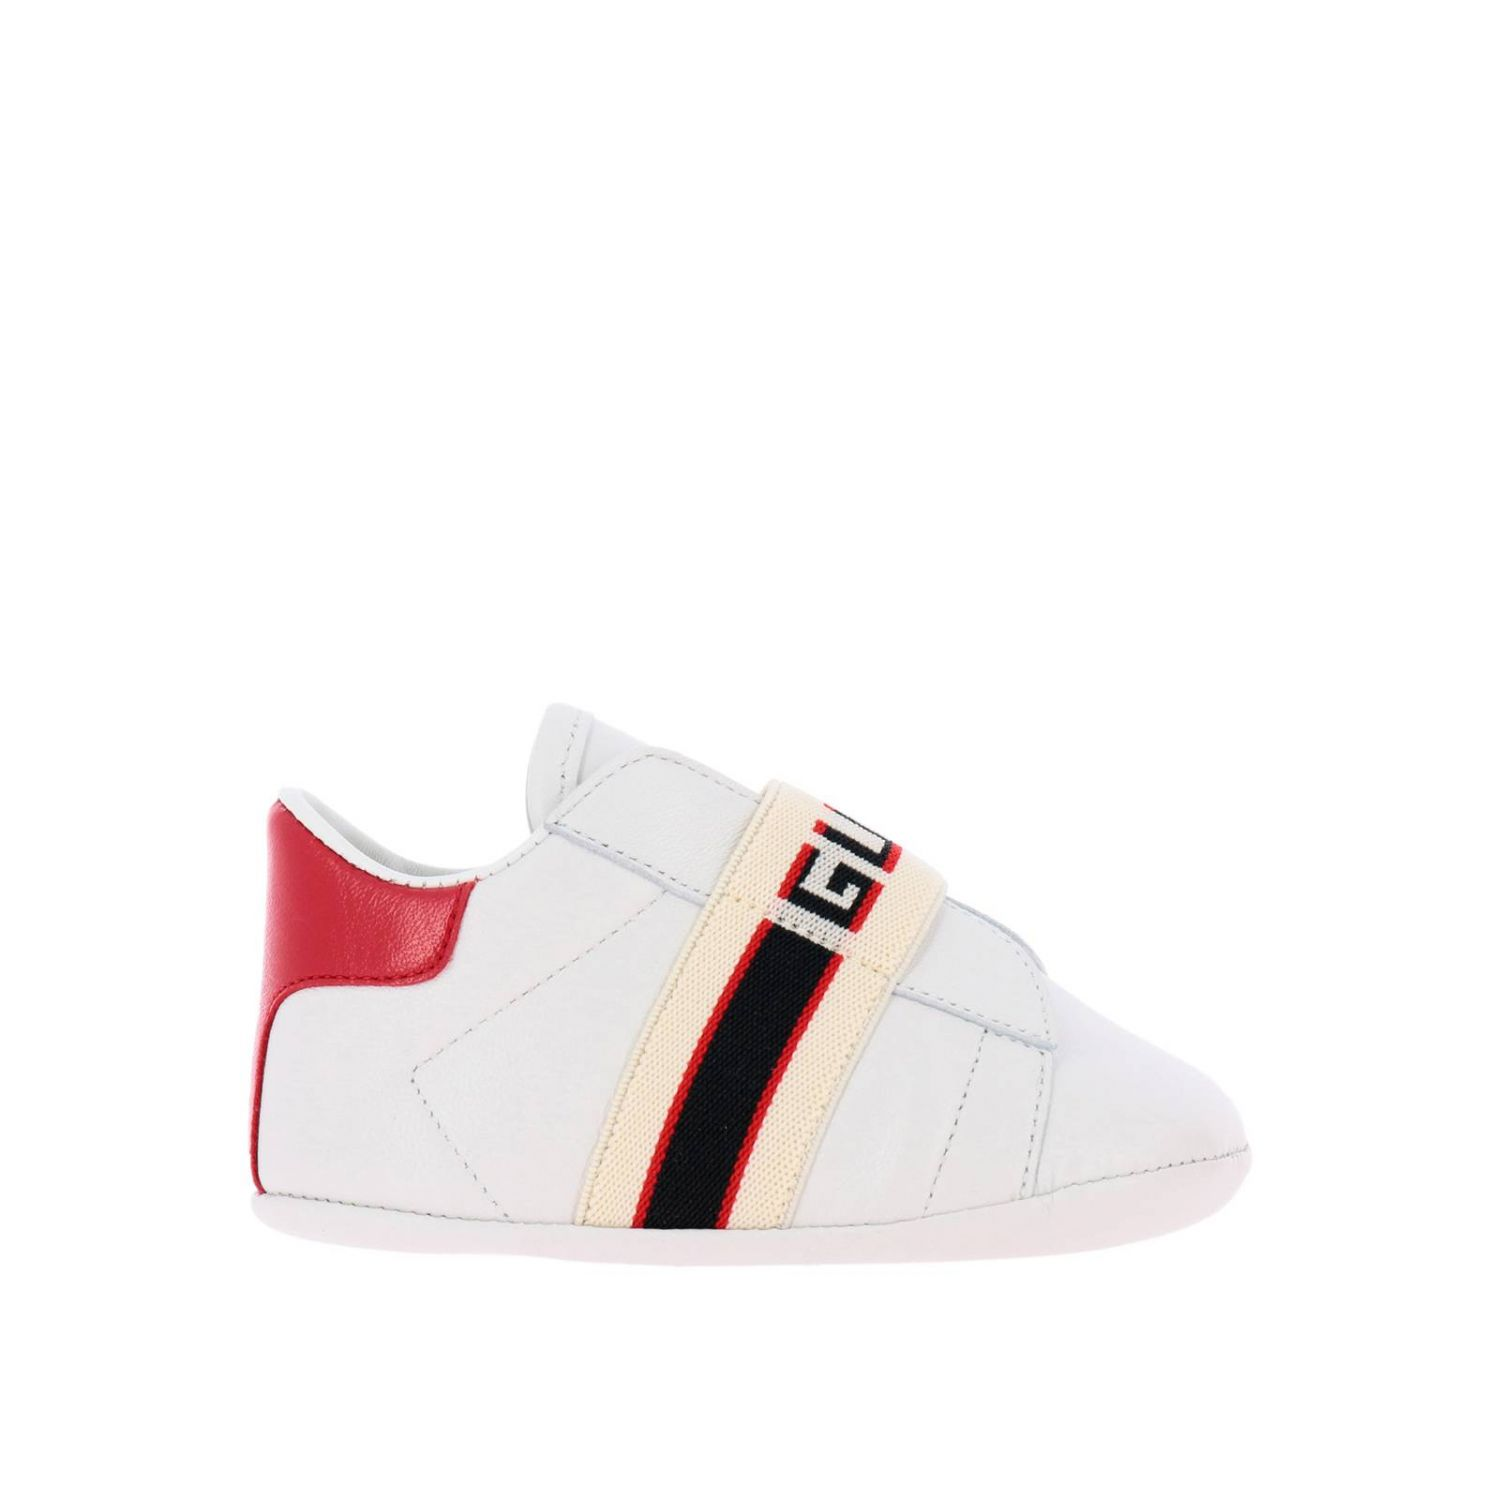 Shoes kids Gucci white 1